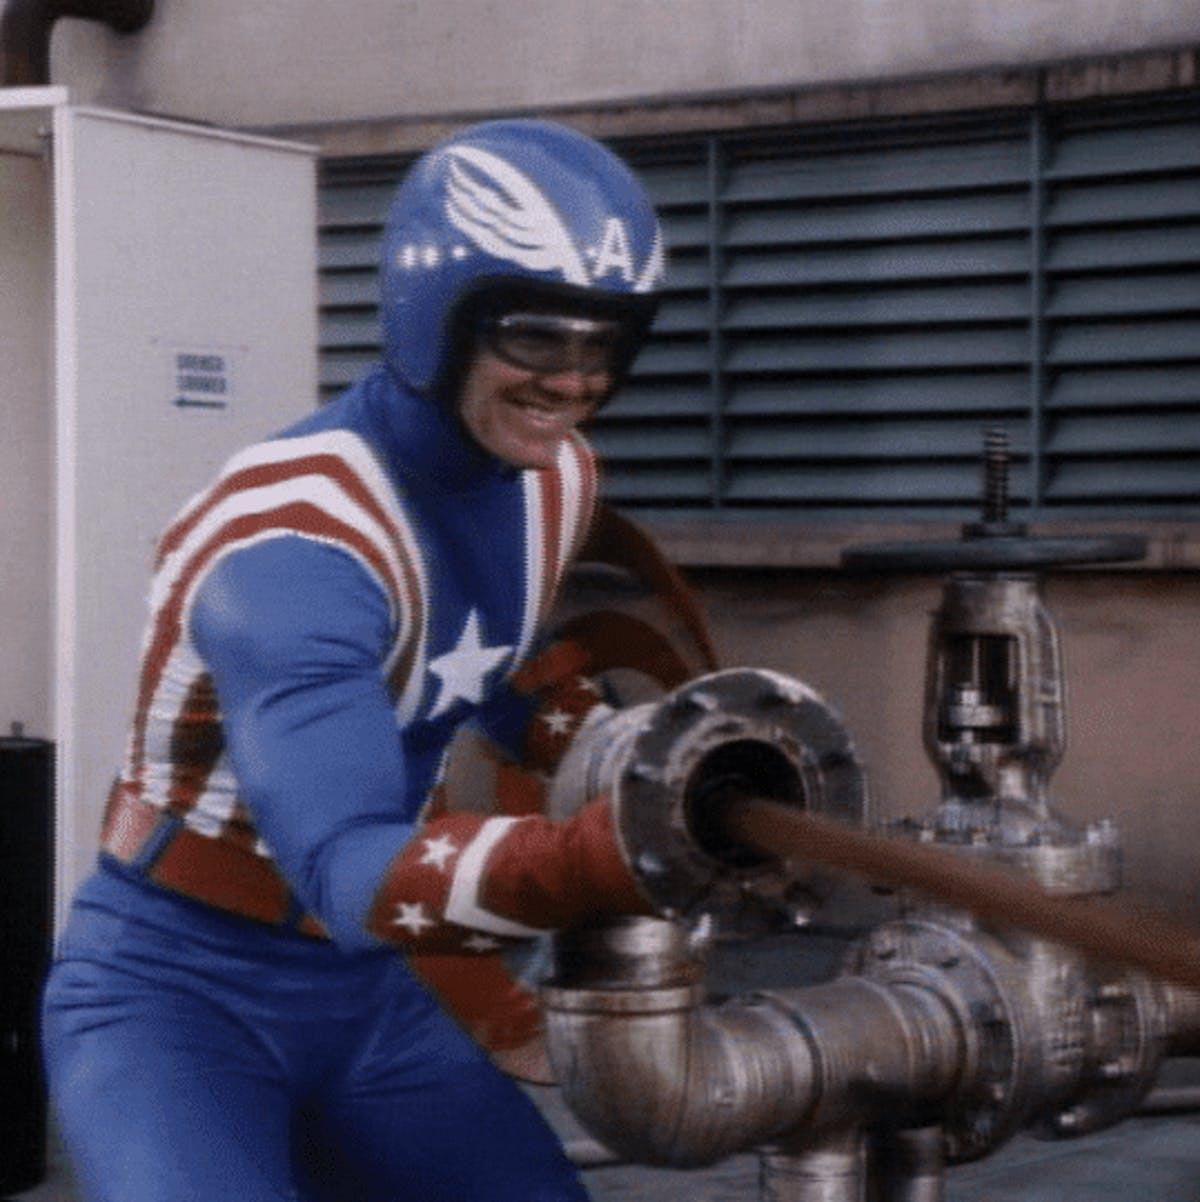 Captain American (1979) review: The corniest Captain America movie ever?